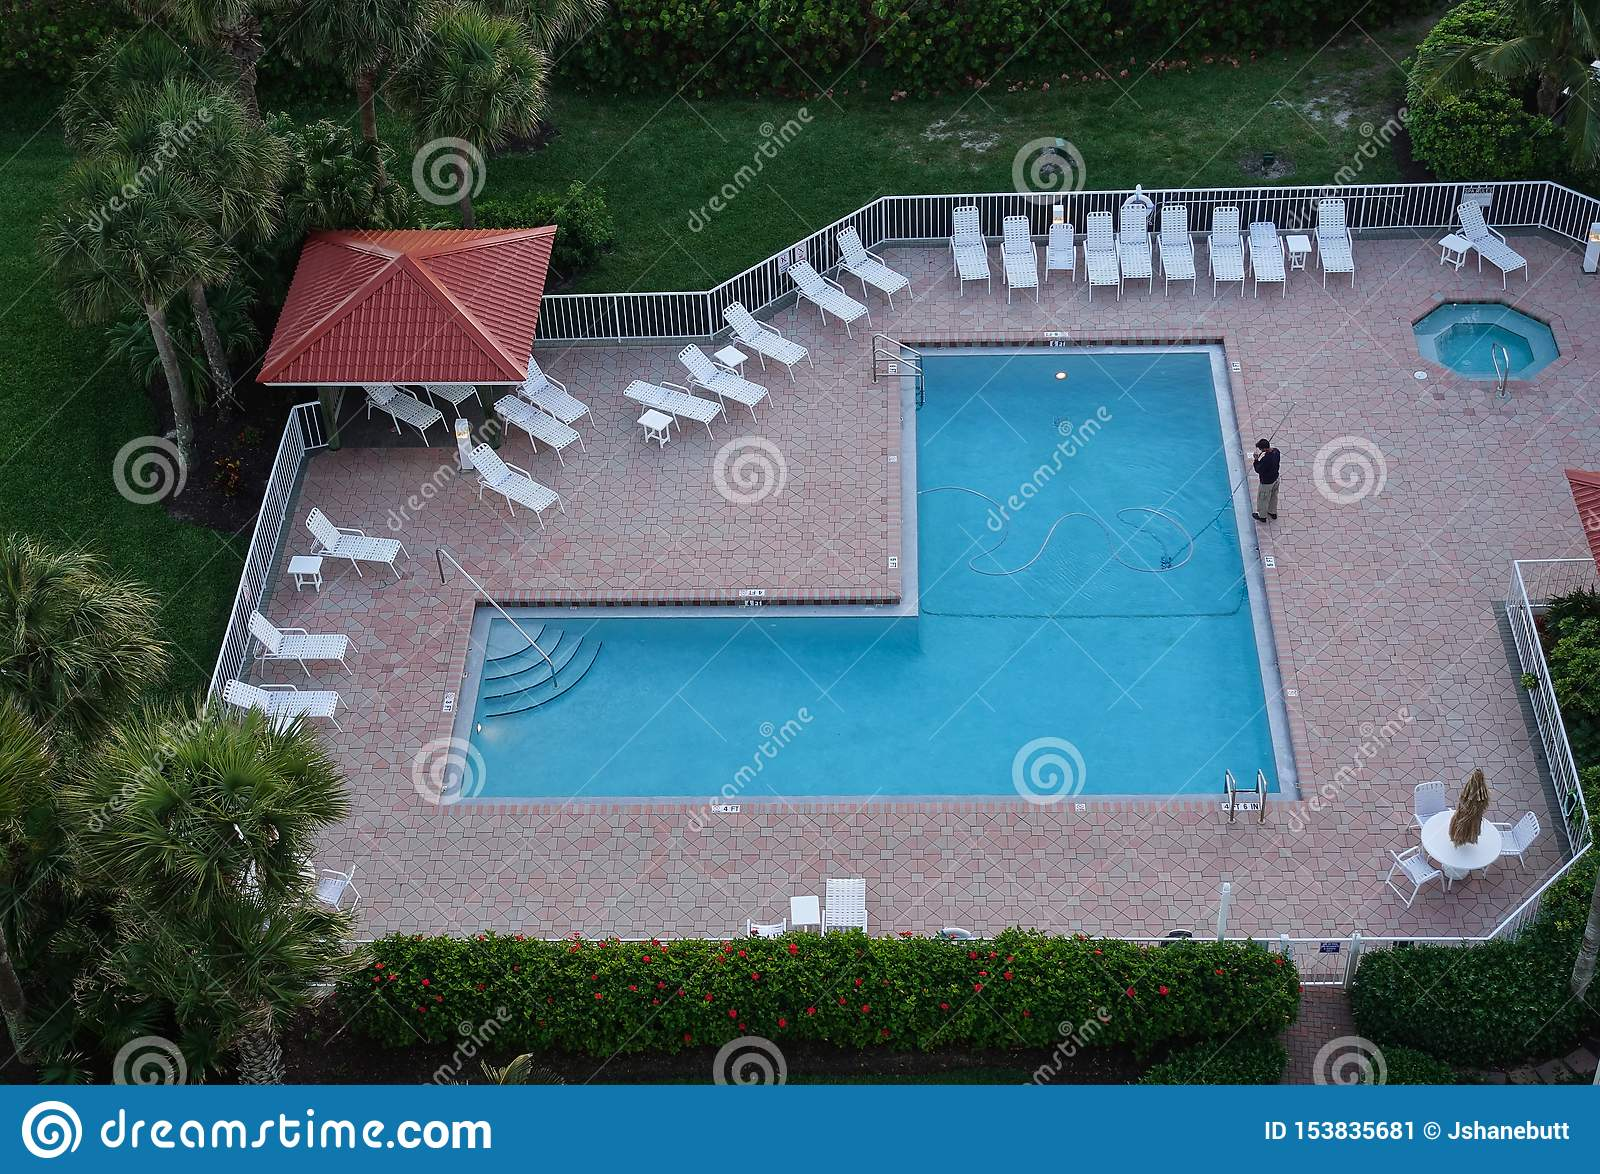 Aerial view of a man cleaning a resort pool